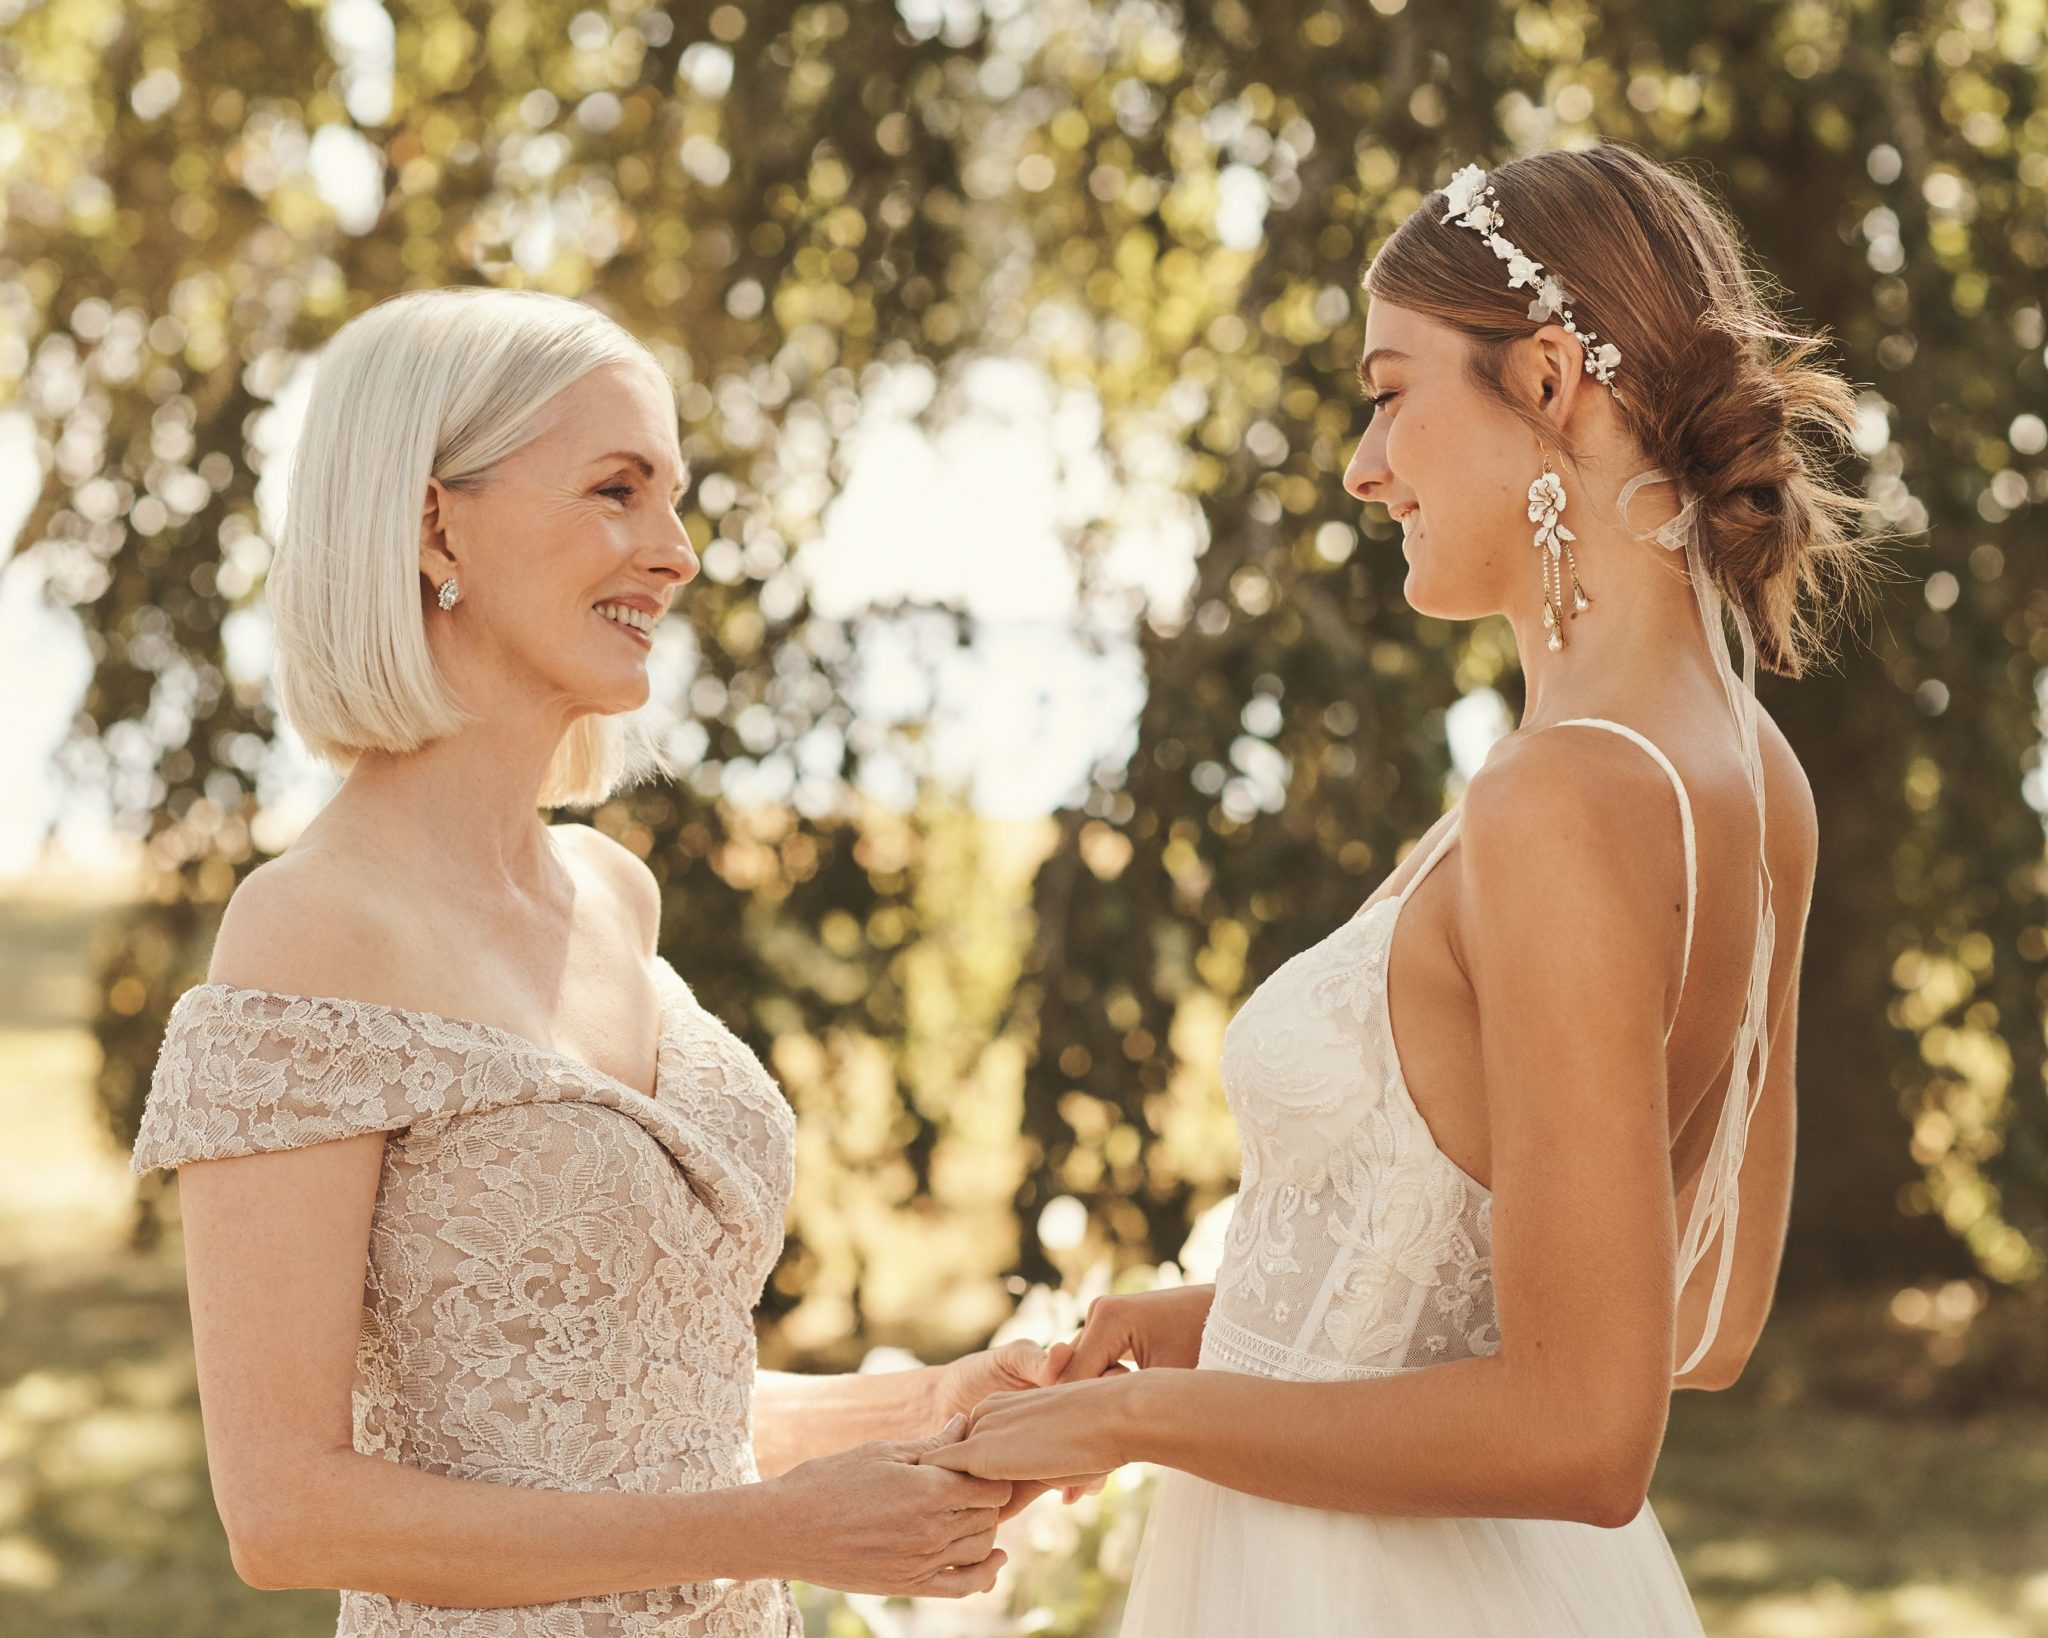 Mother Of The Bride Dress Etiquette David S Bridal Blog,Wedding Wedding Party Long Dresses For Girls